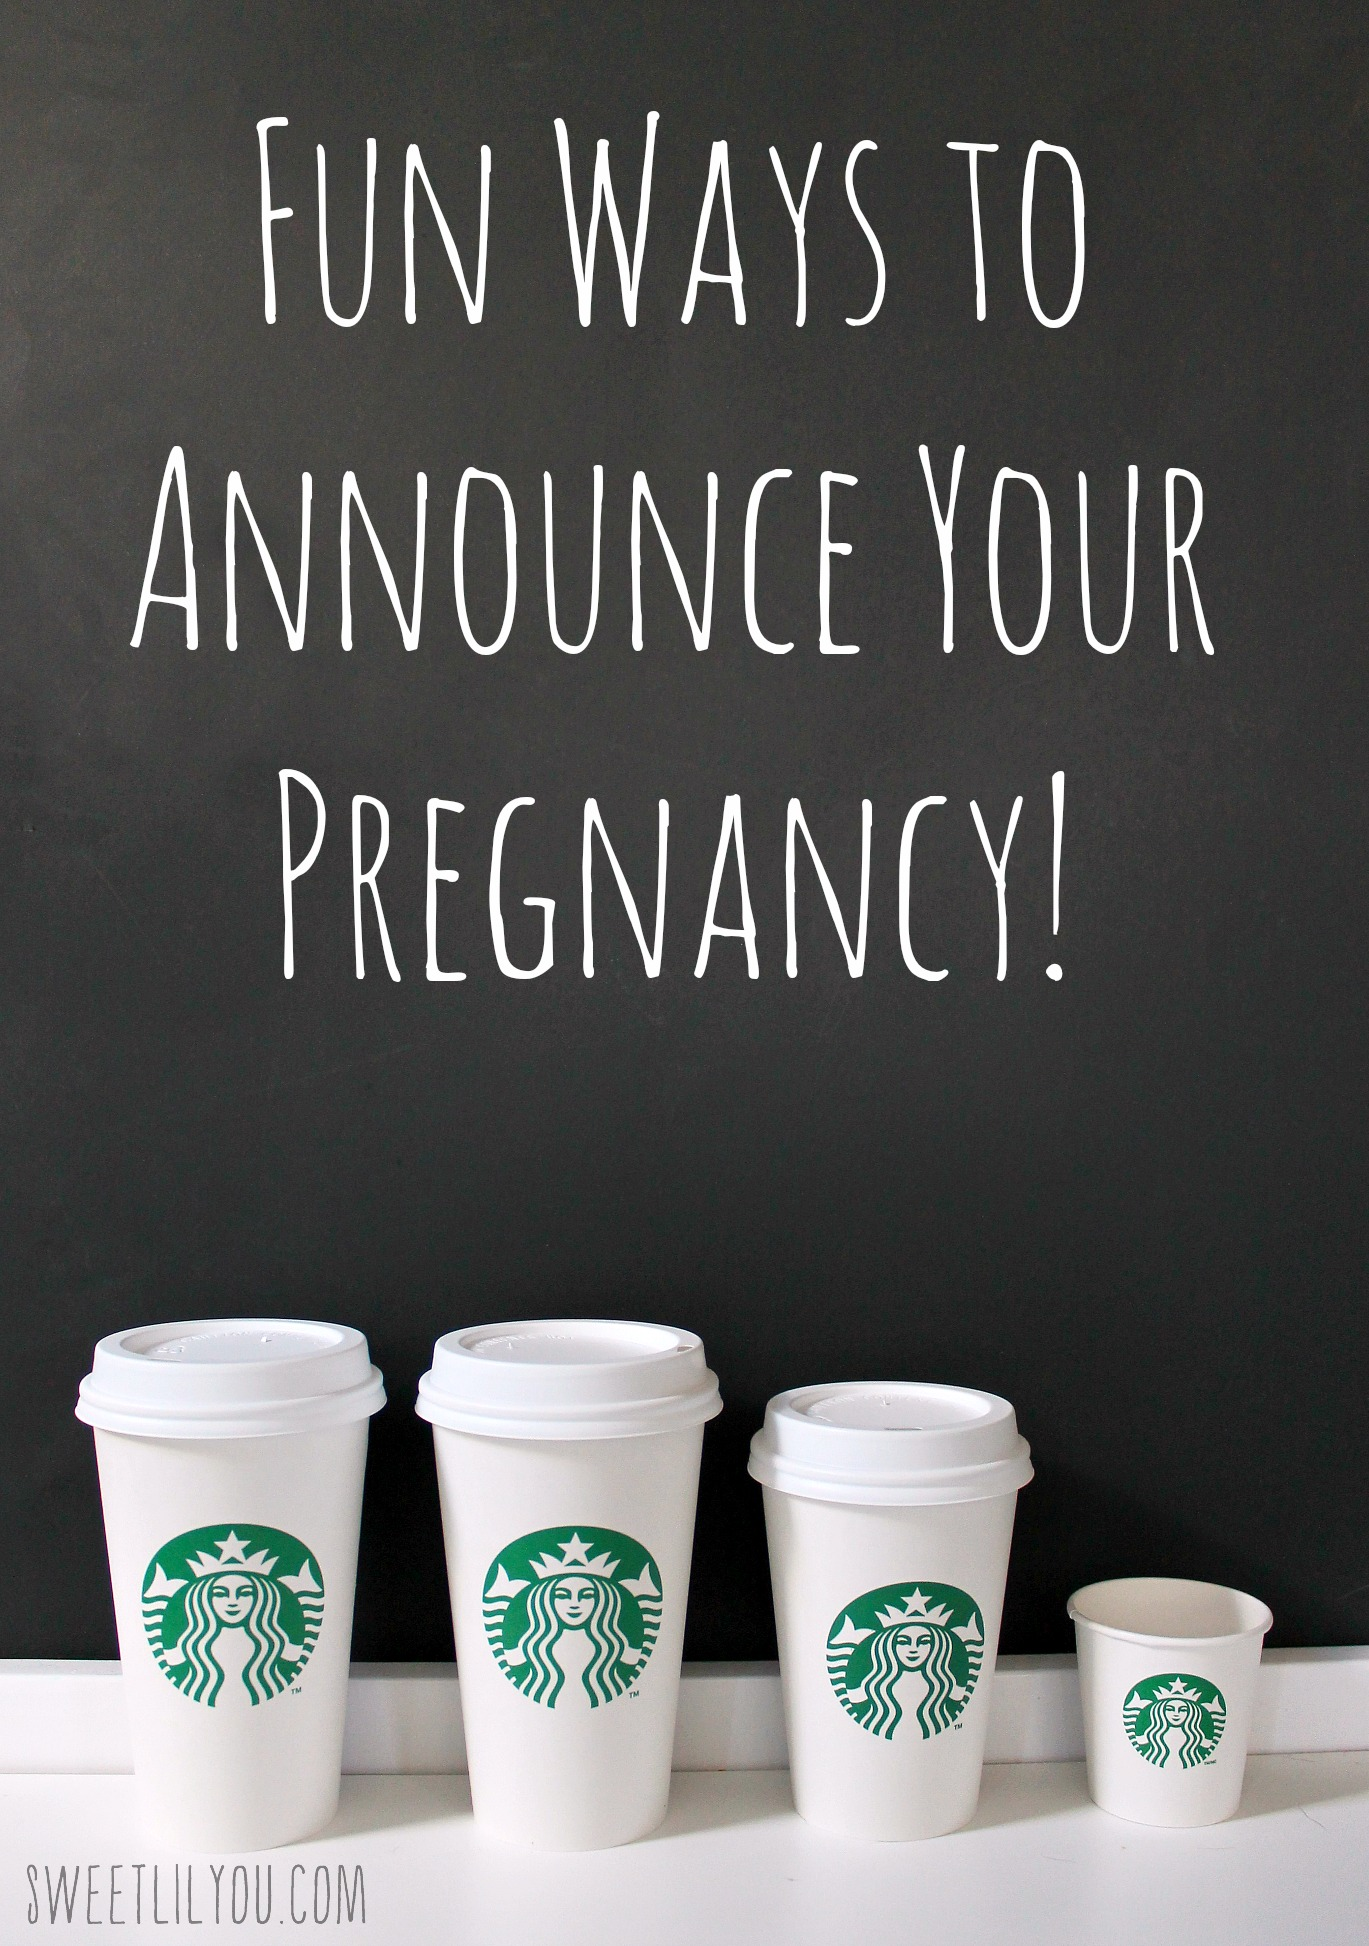 Ways To Read Tarot Cards: Fun Pregnancy Announcement Ideas